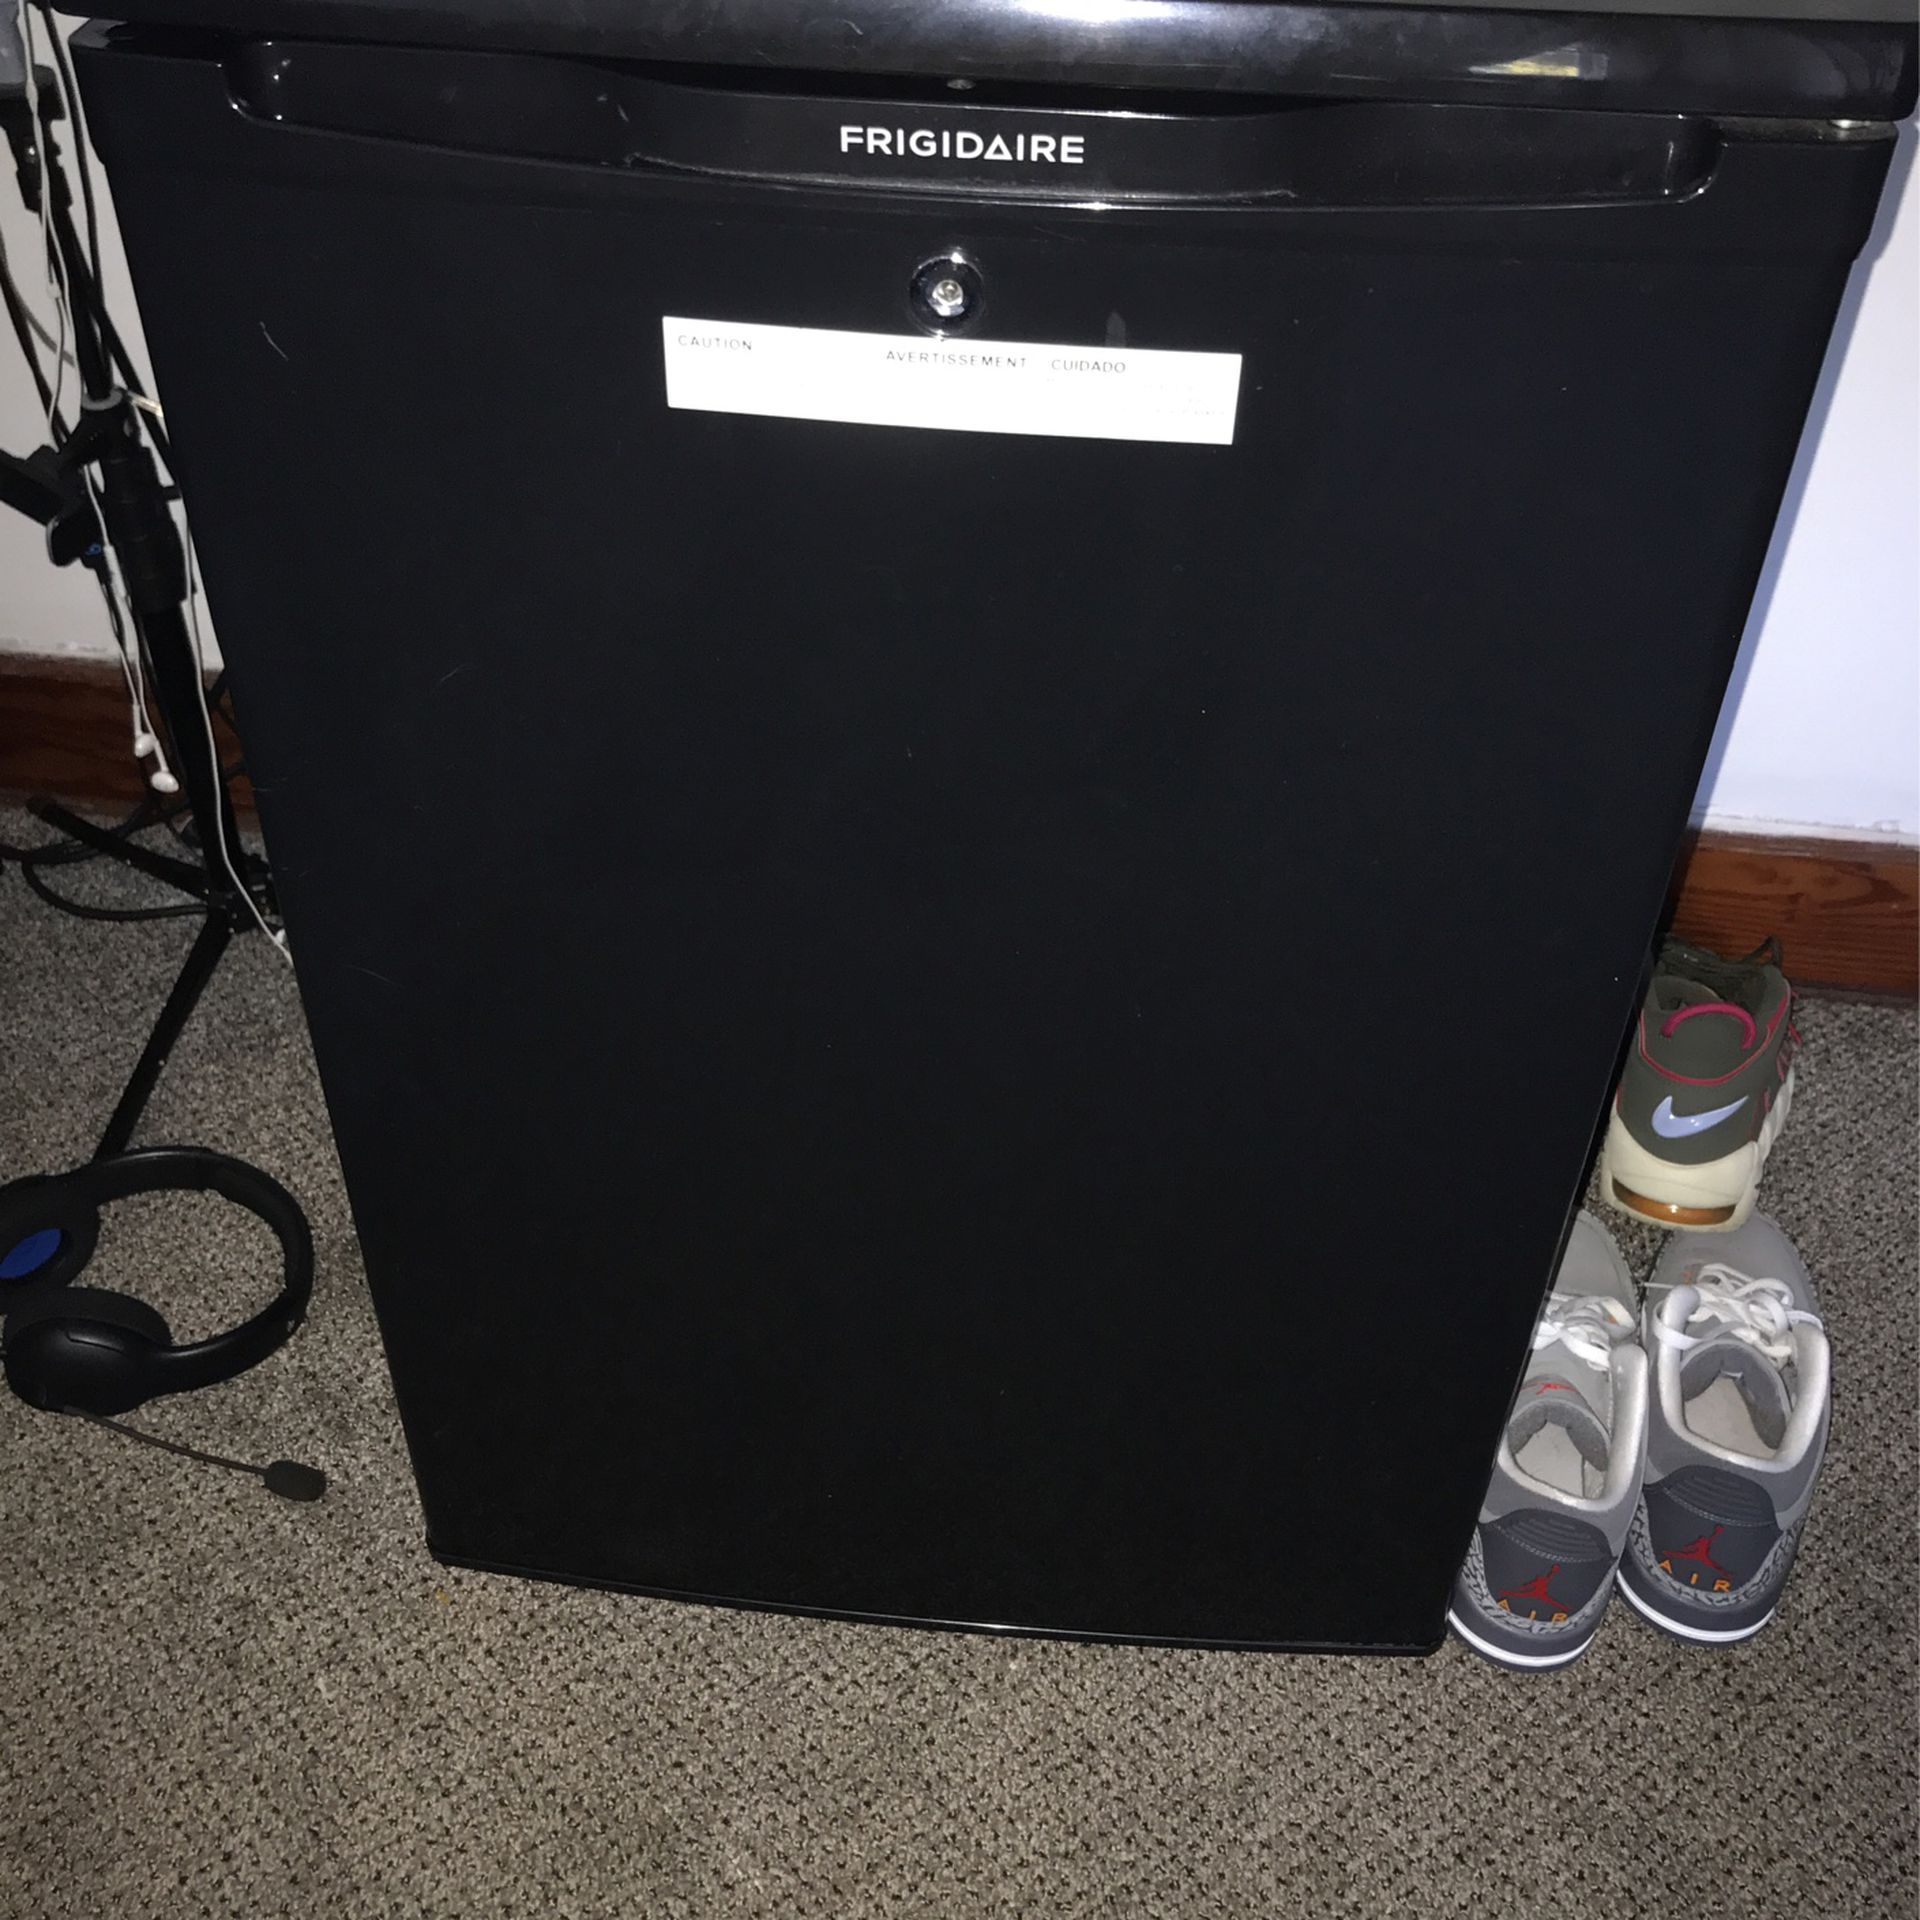 Frigidaire mini refrigerator, nothing wrong with it works perfectly fine! will be cleaned out for whoever buys it! needs gone ASAP!